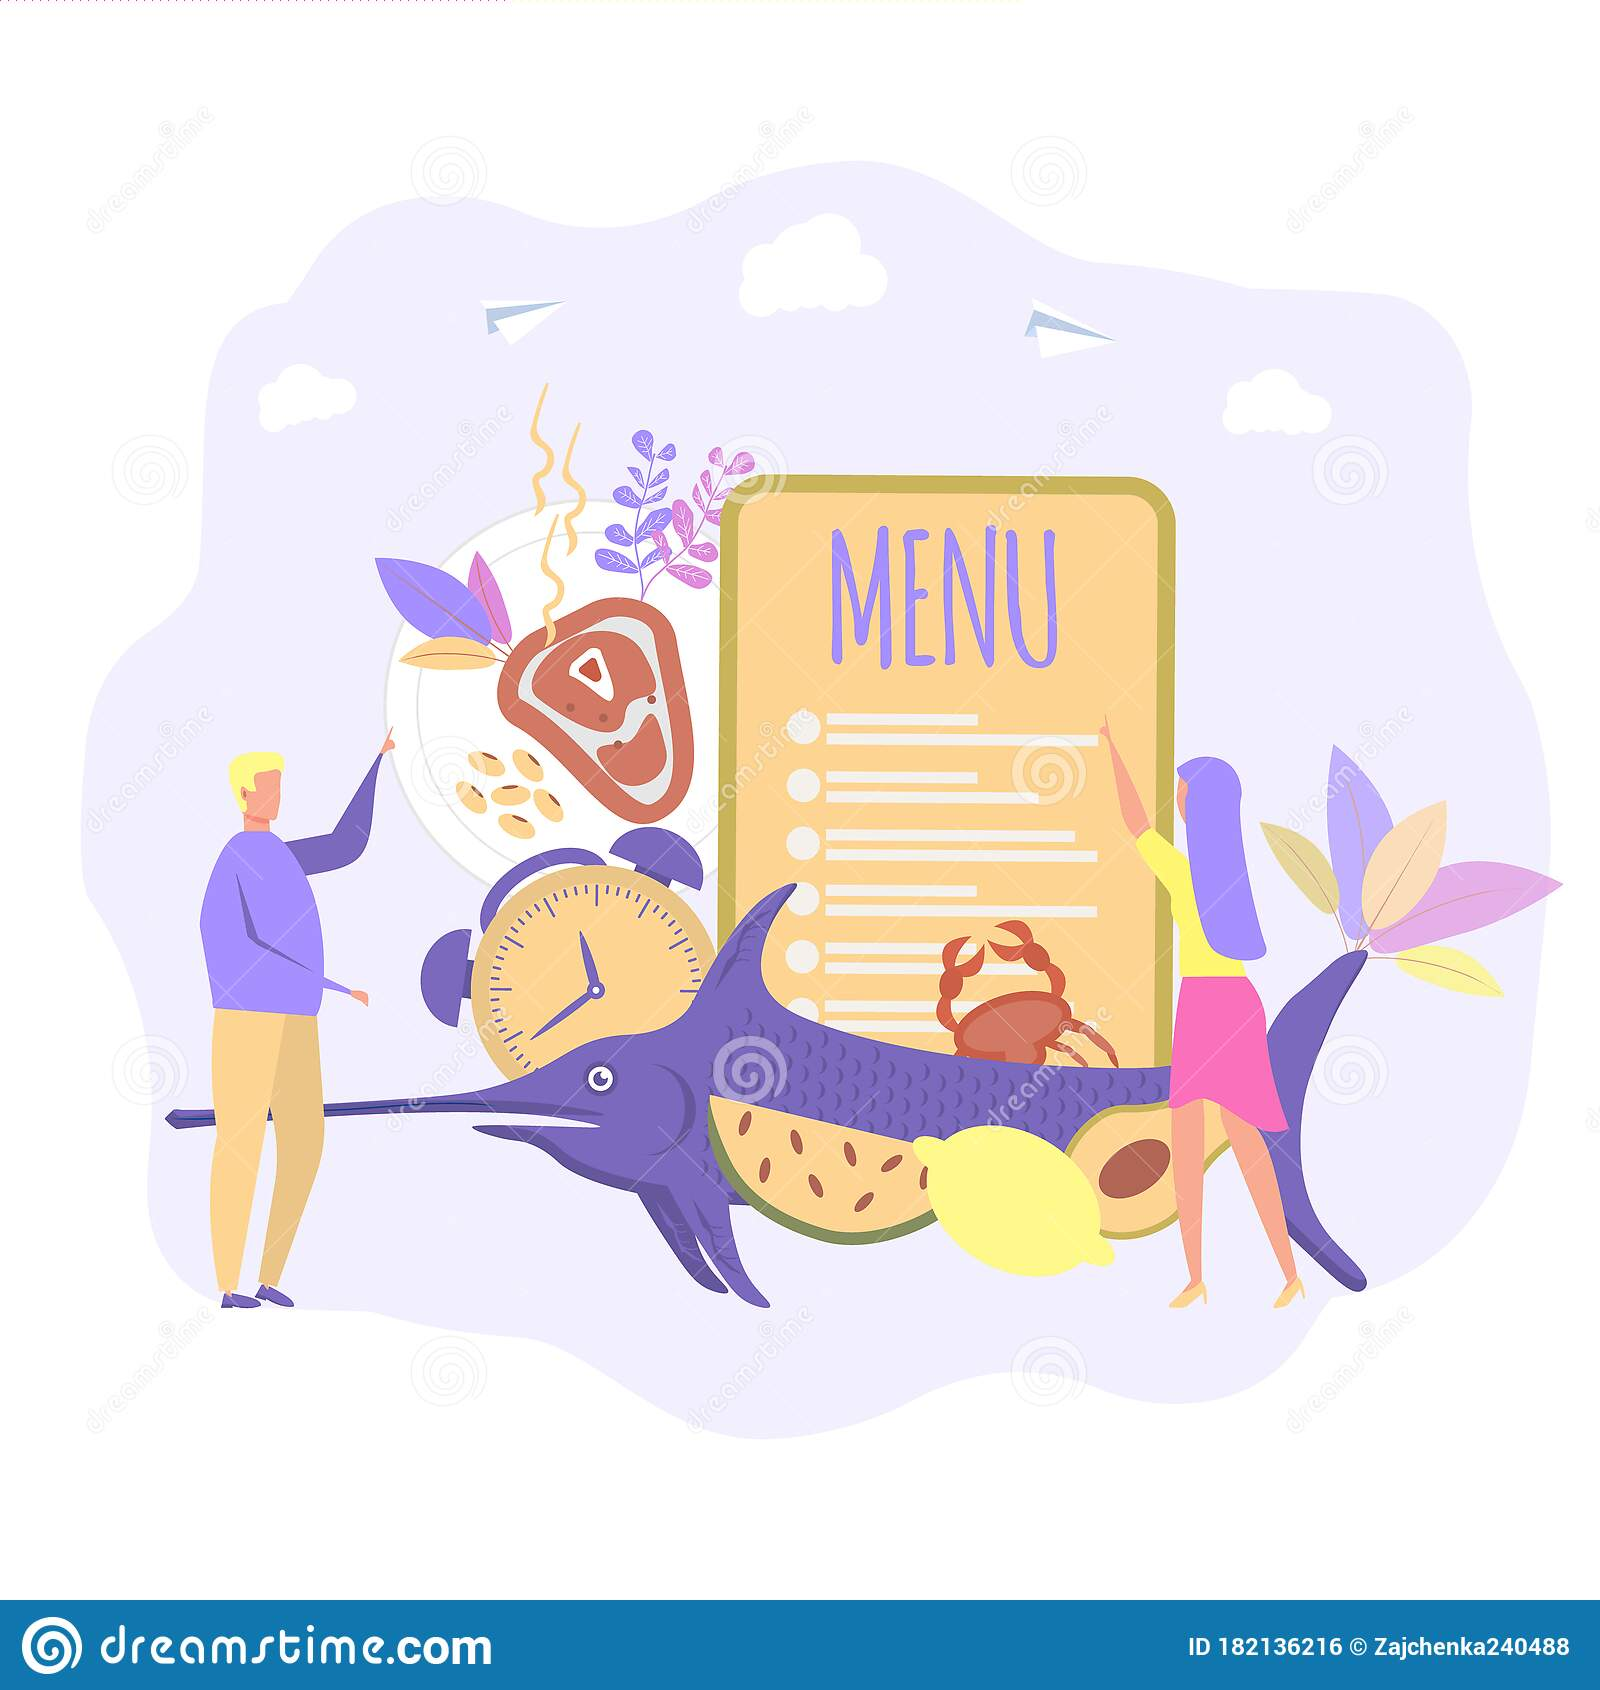 Seafood Diet Menu Proper Nutrition Healthy Food Seafood Restaurant Concept Colorful Vector Illustration Stock Illustration Illustration Of Natural Graphic 182136216